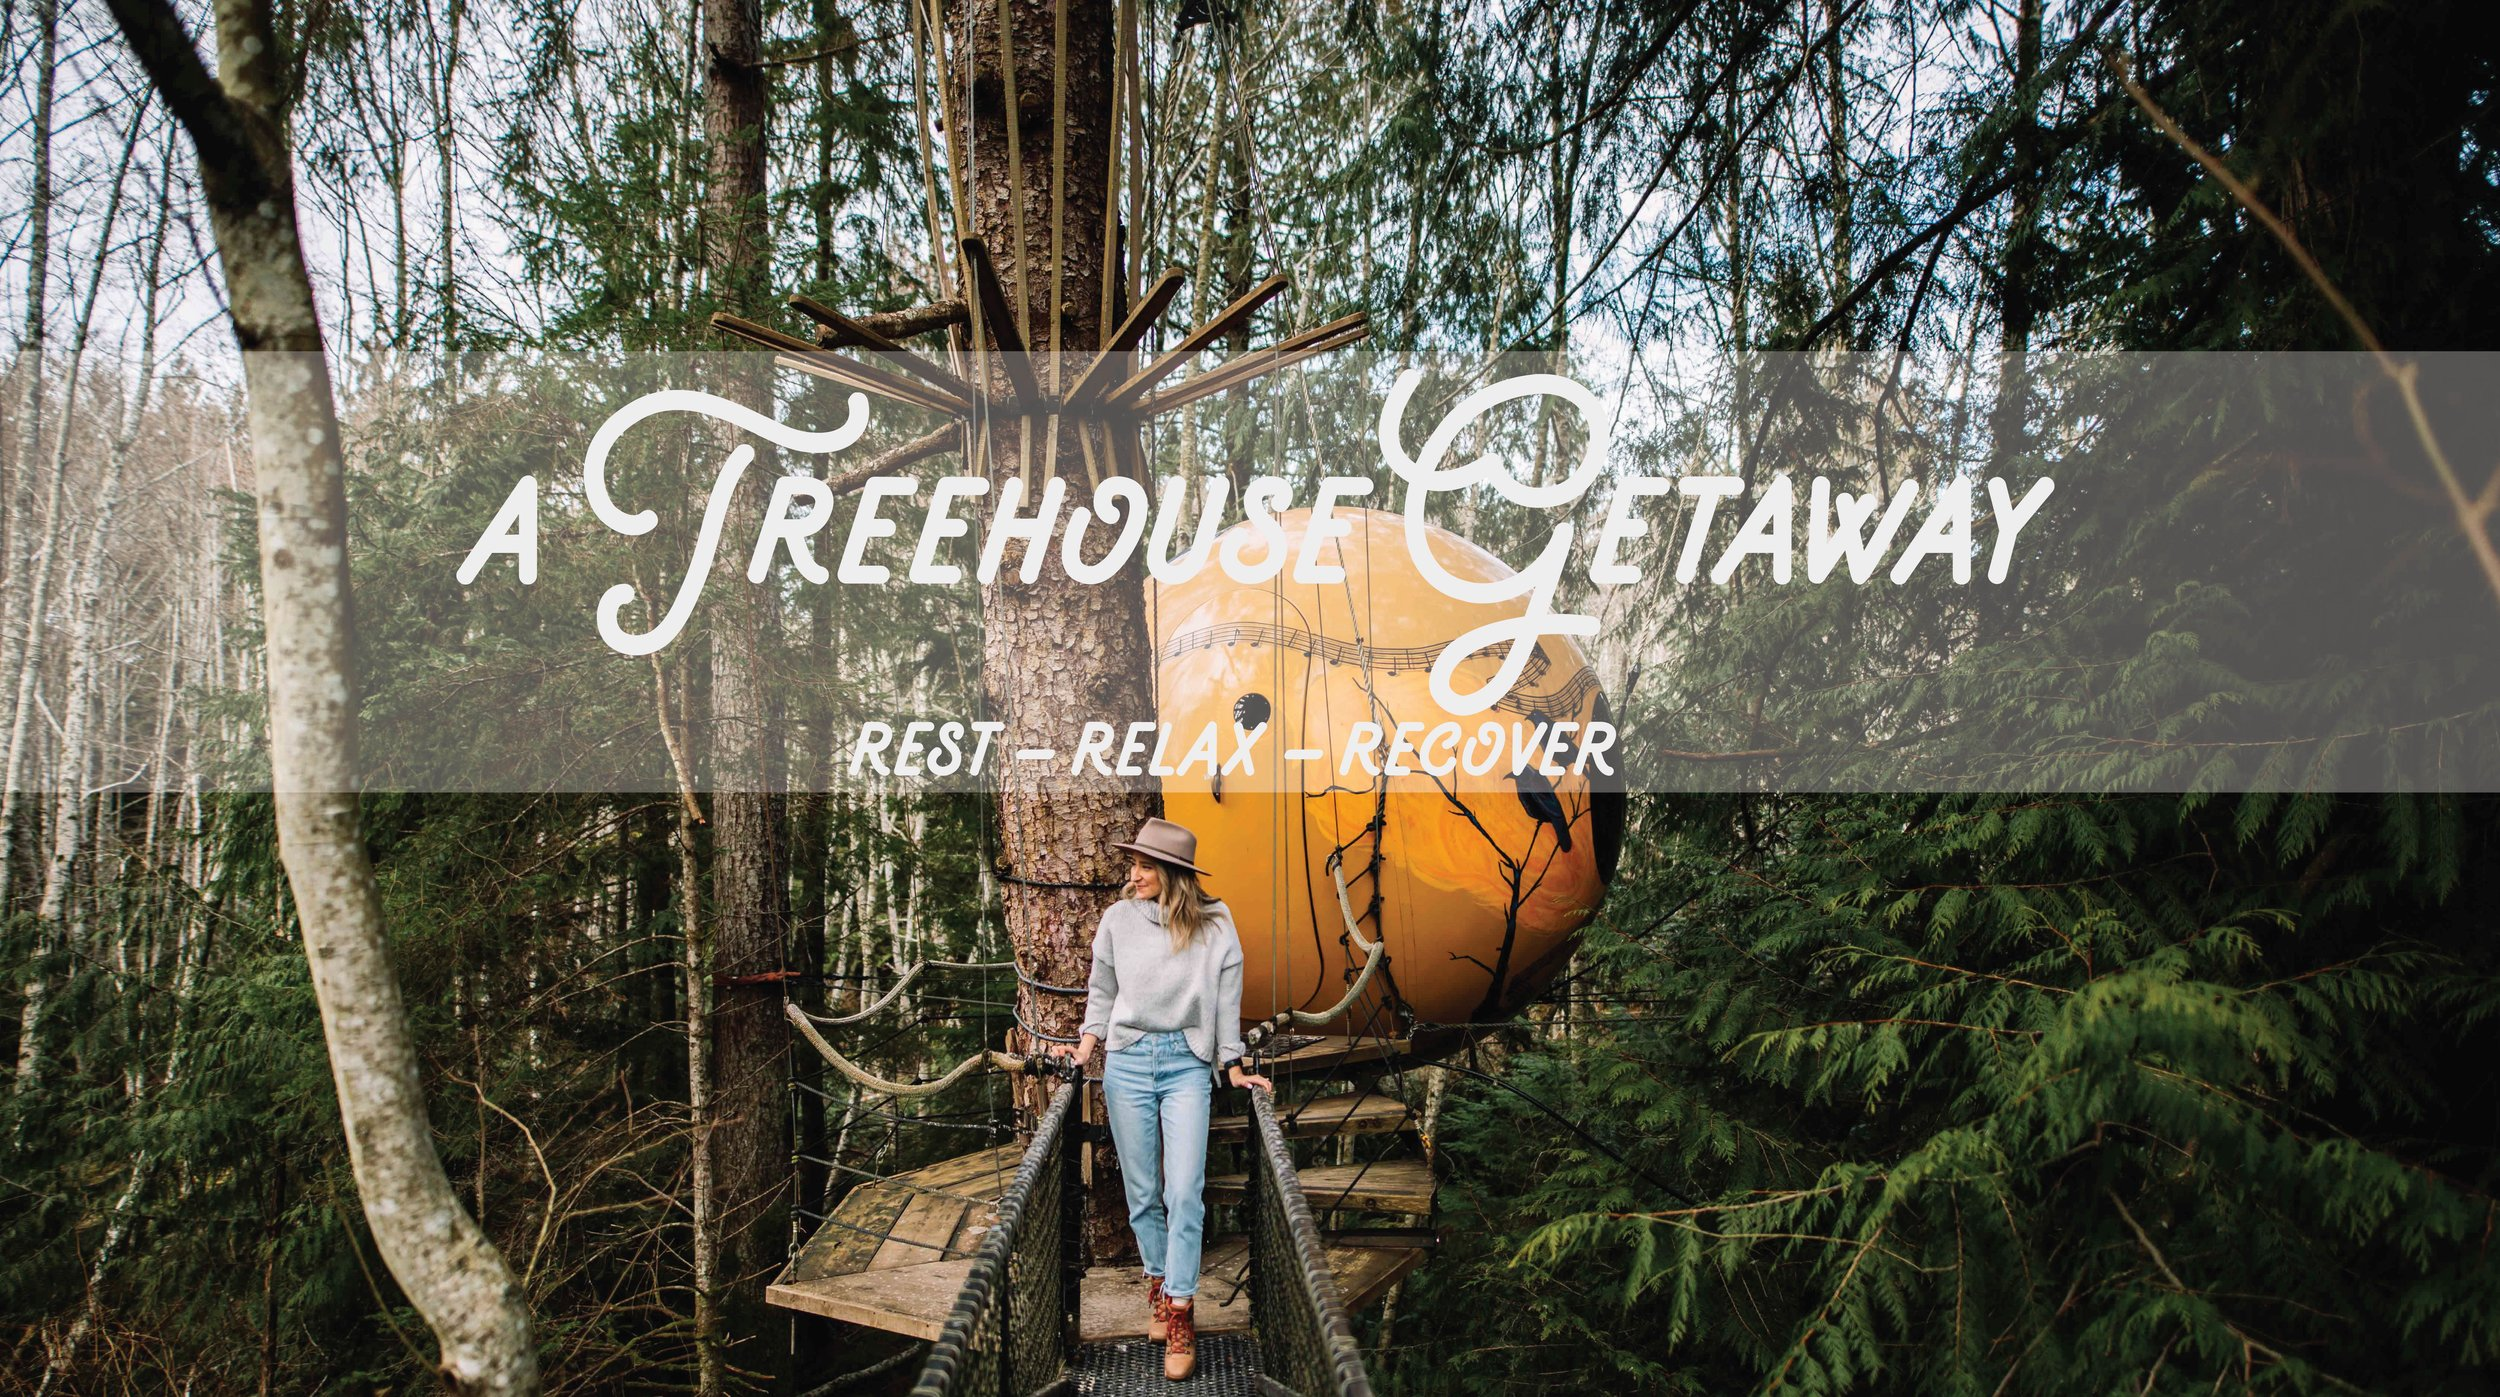 A Treehouse Getaway - Rest, Relax, Recover with Jamieson